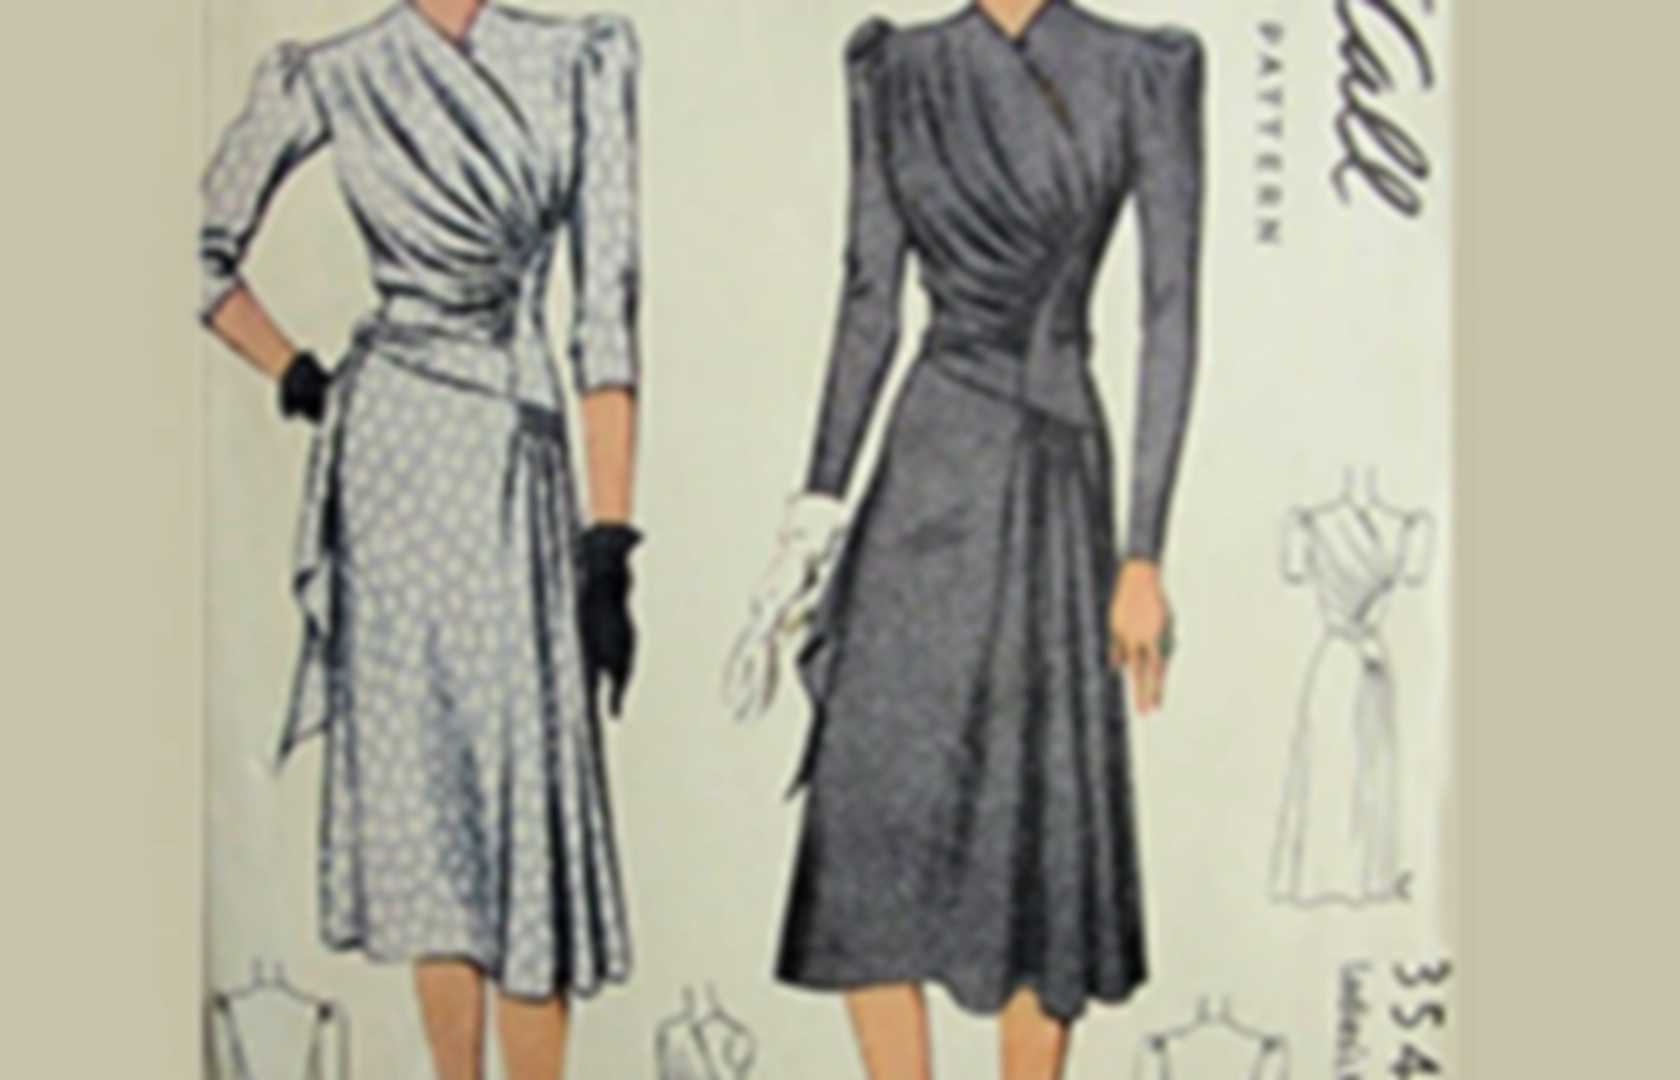 Vintage/Historical Sewing Patterns   Pearltrees